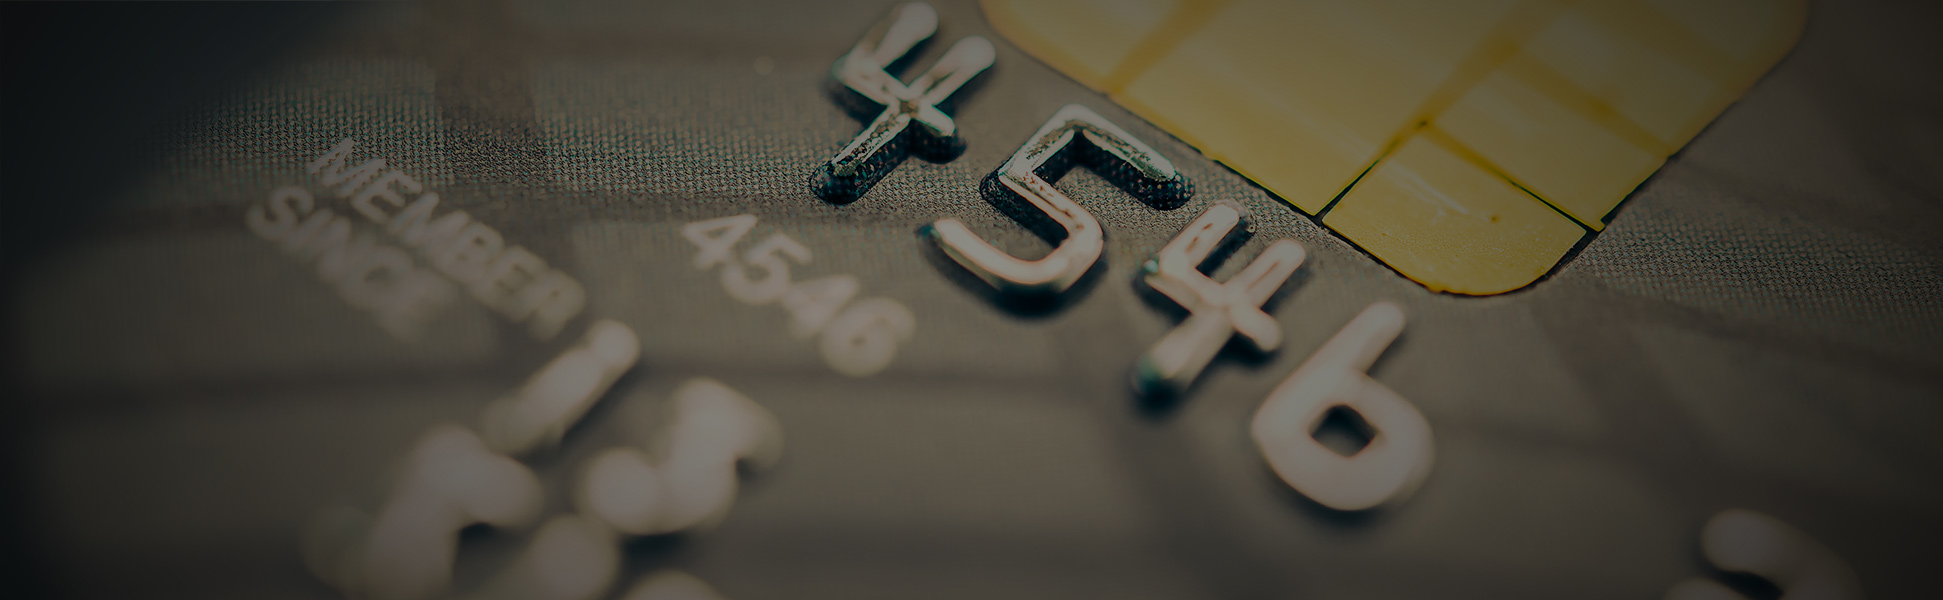 credit-card-close-up